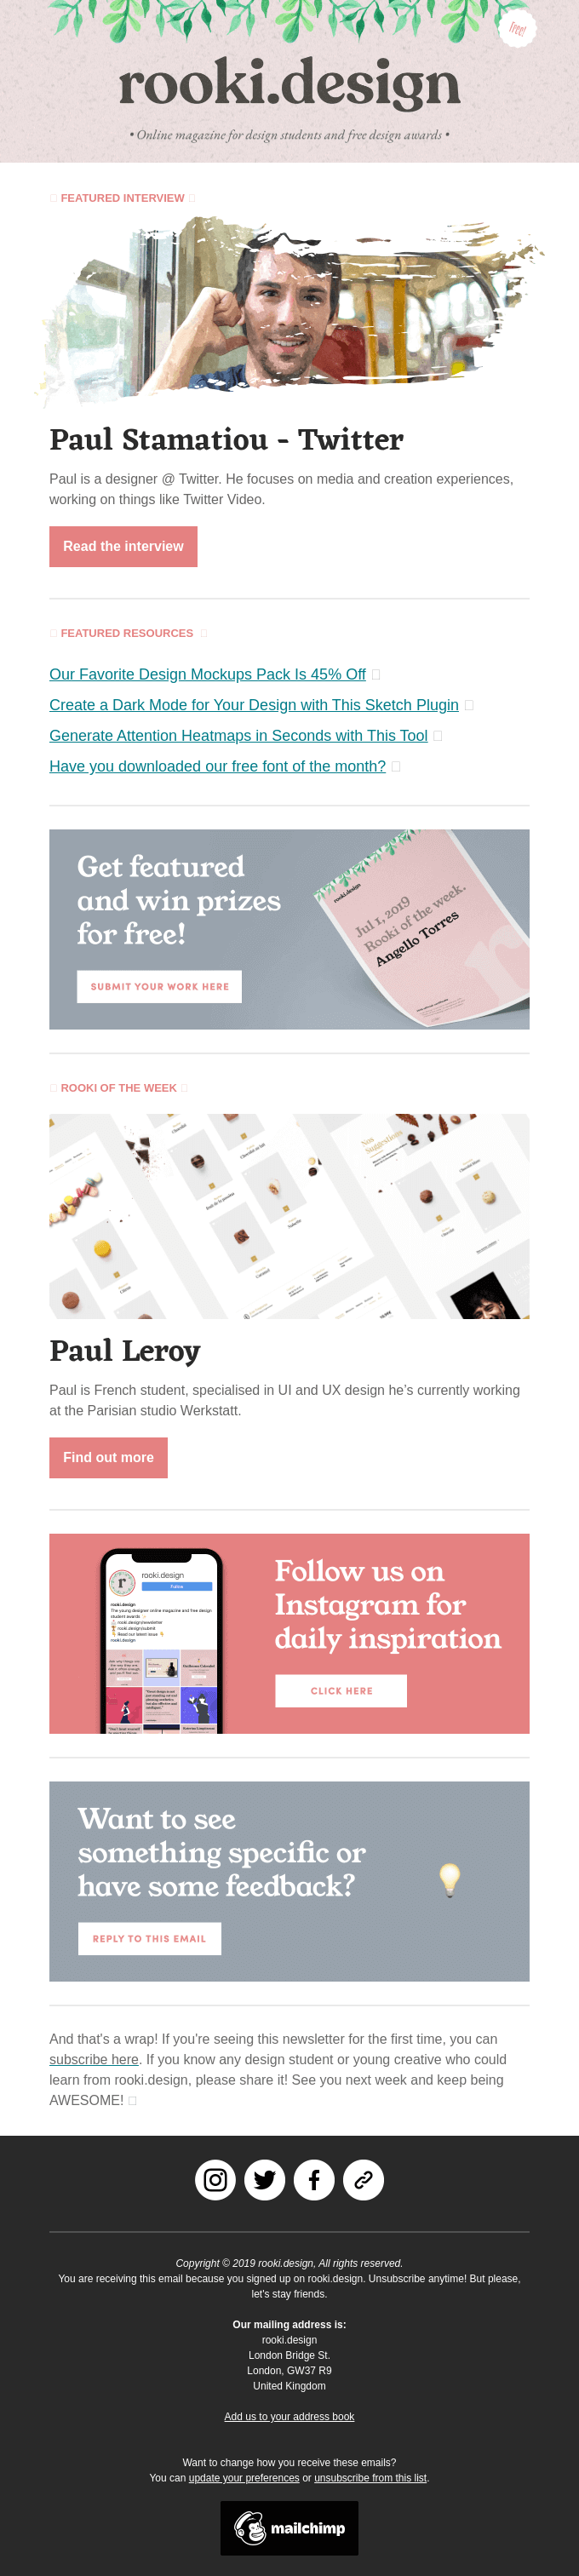 🔥 Paul Stamatiou, our favourite mockups pack & more